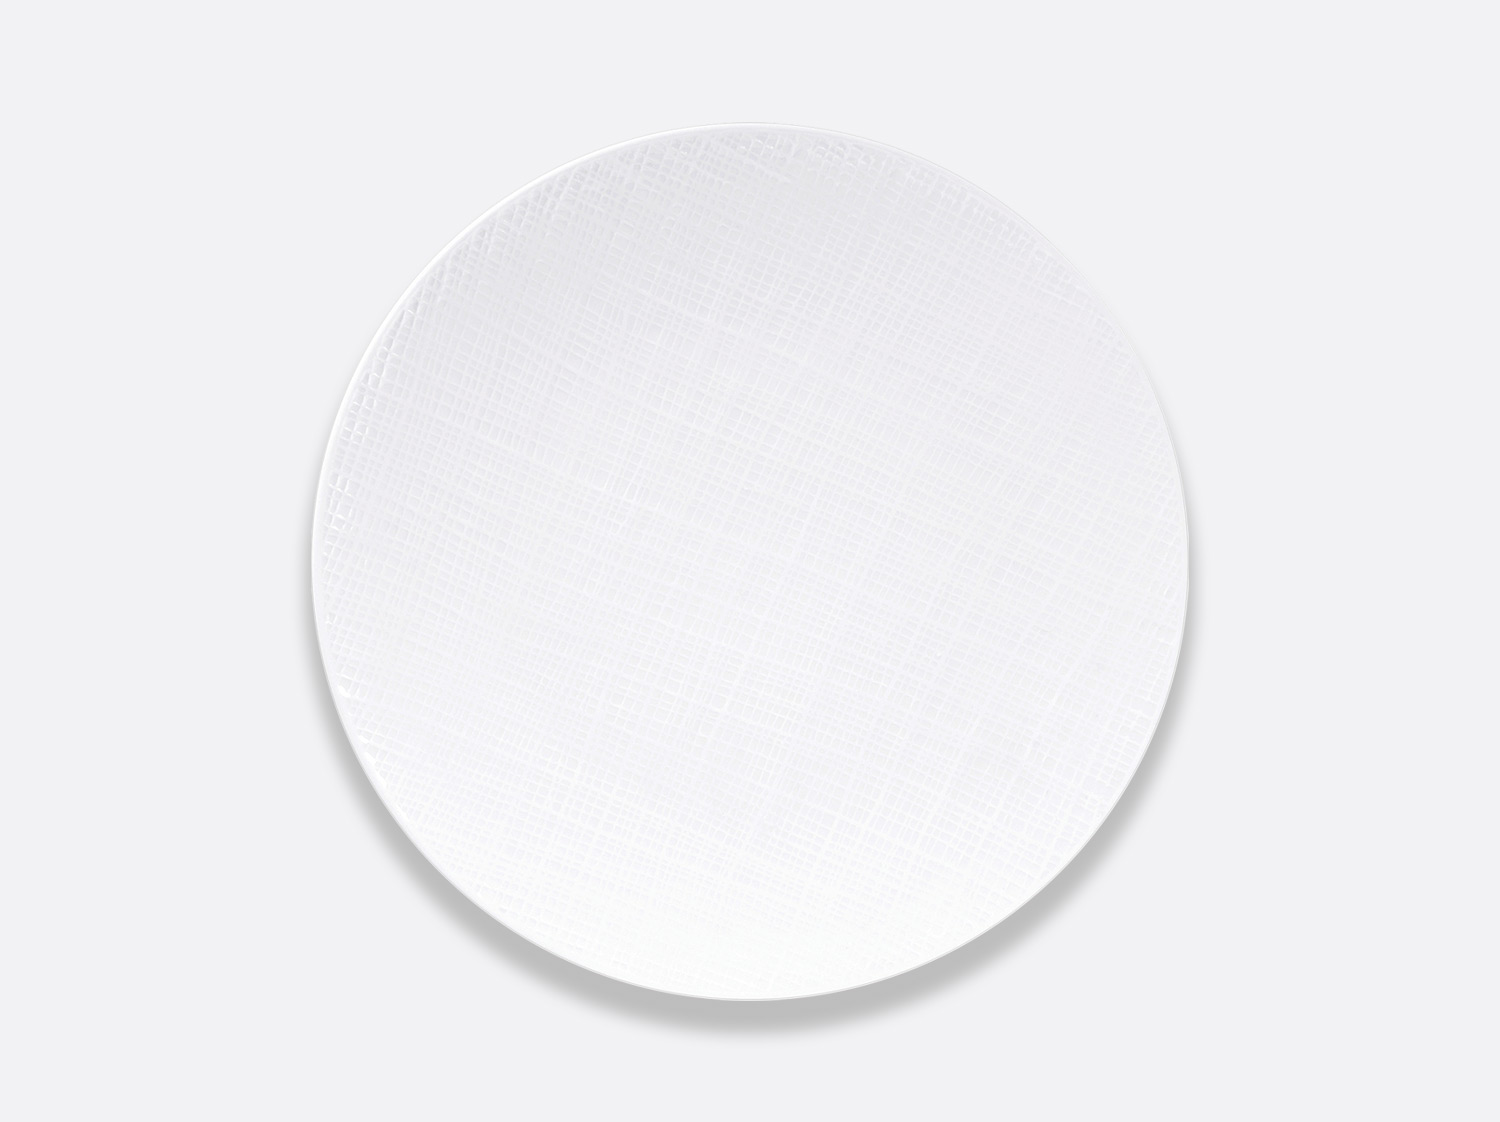 China Coupe plate 21 cm of the collection Organza | Bernardaud